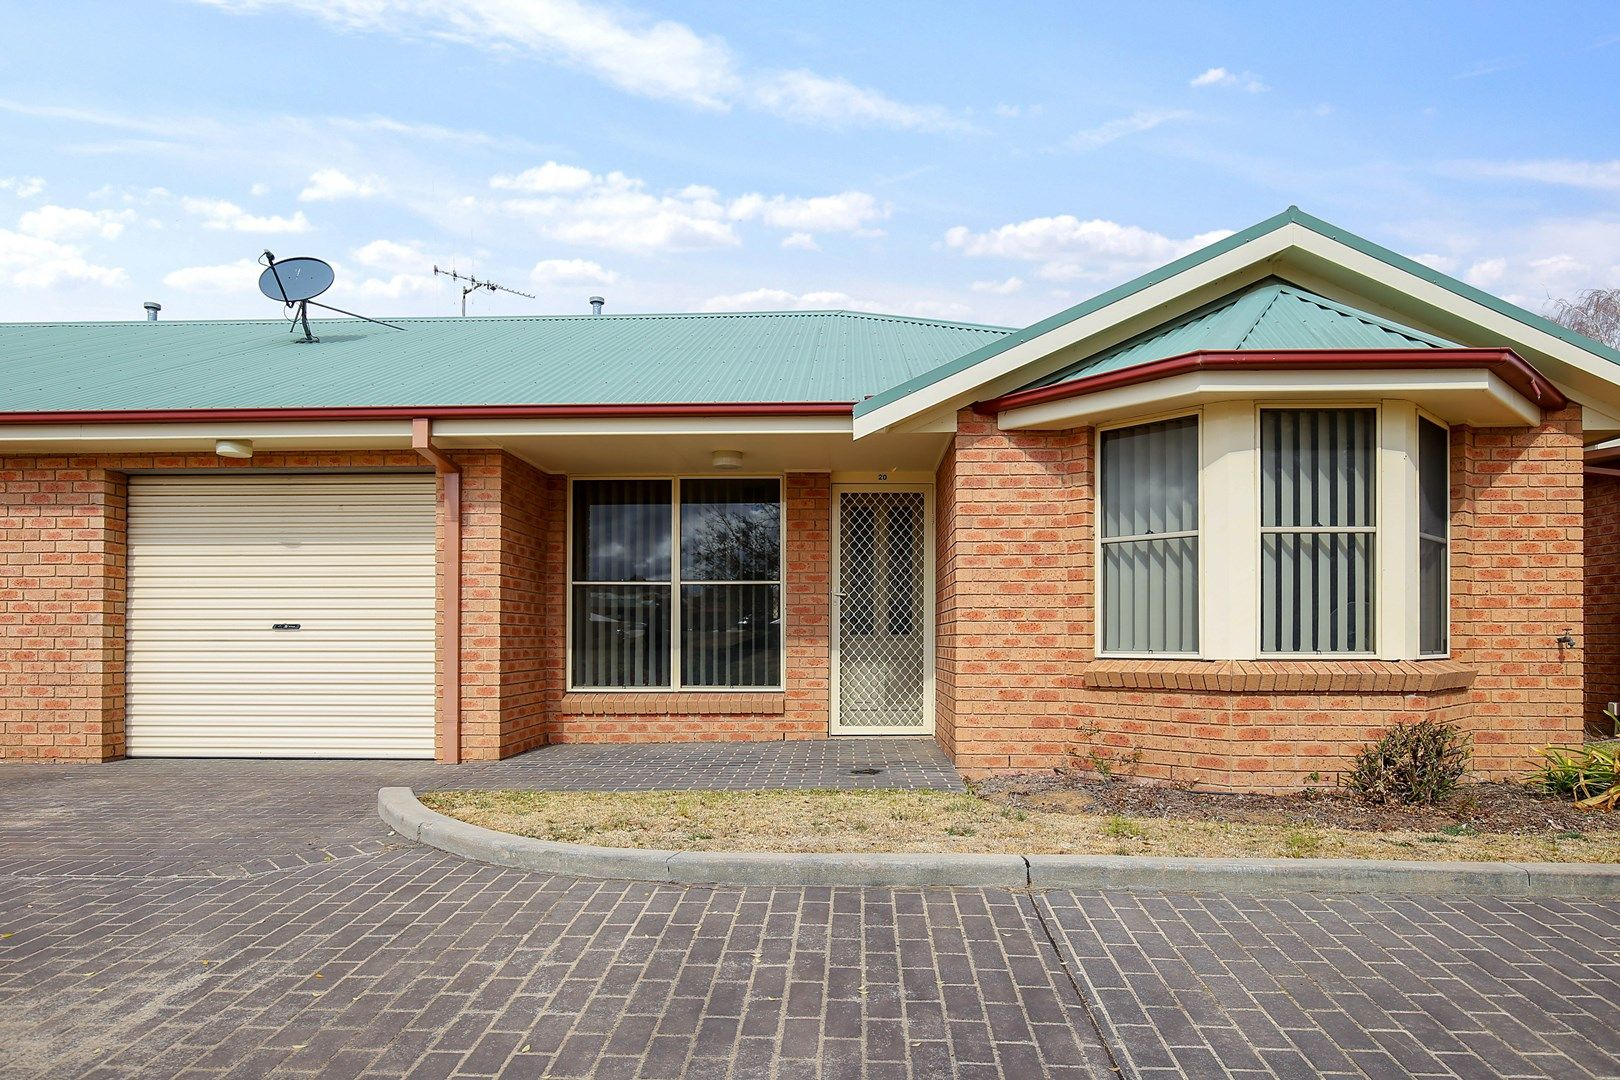 20/189 CLINTON STREET, Orange NSW 2800, Image 0